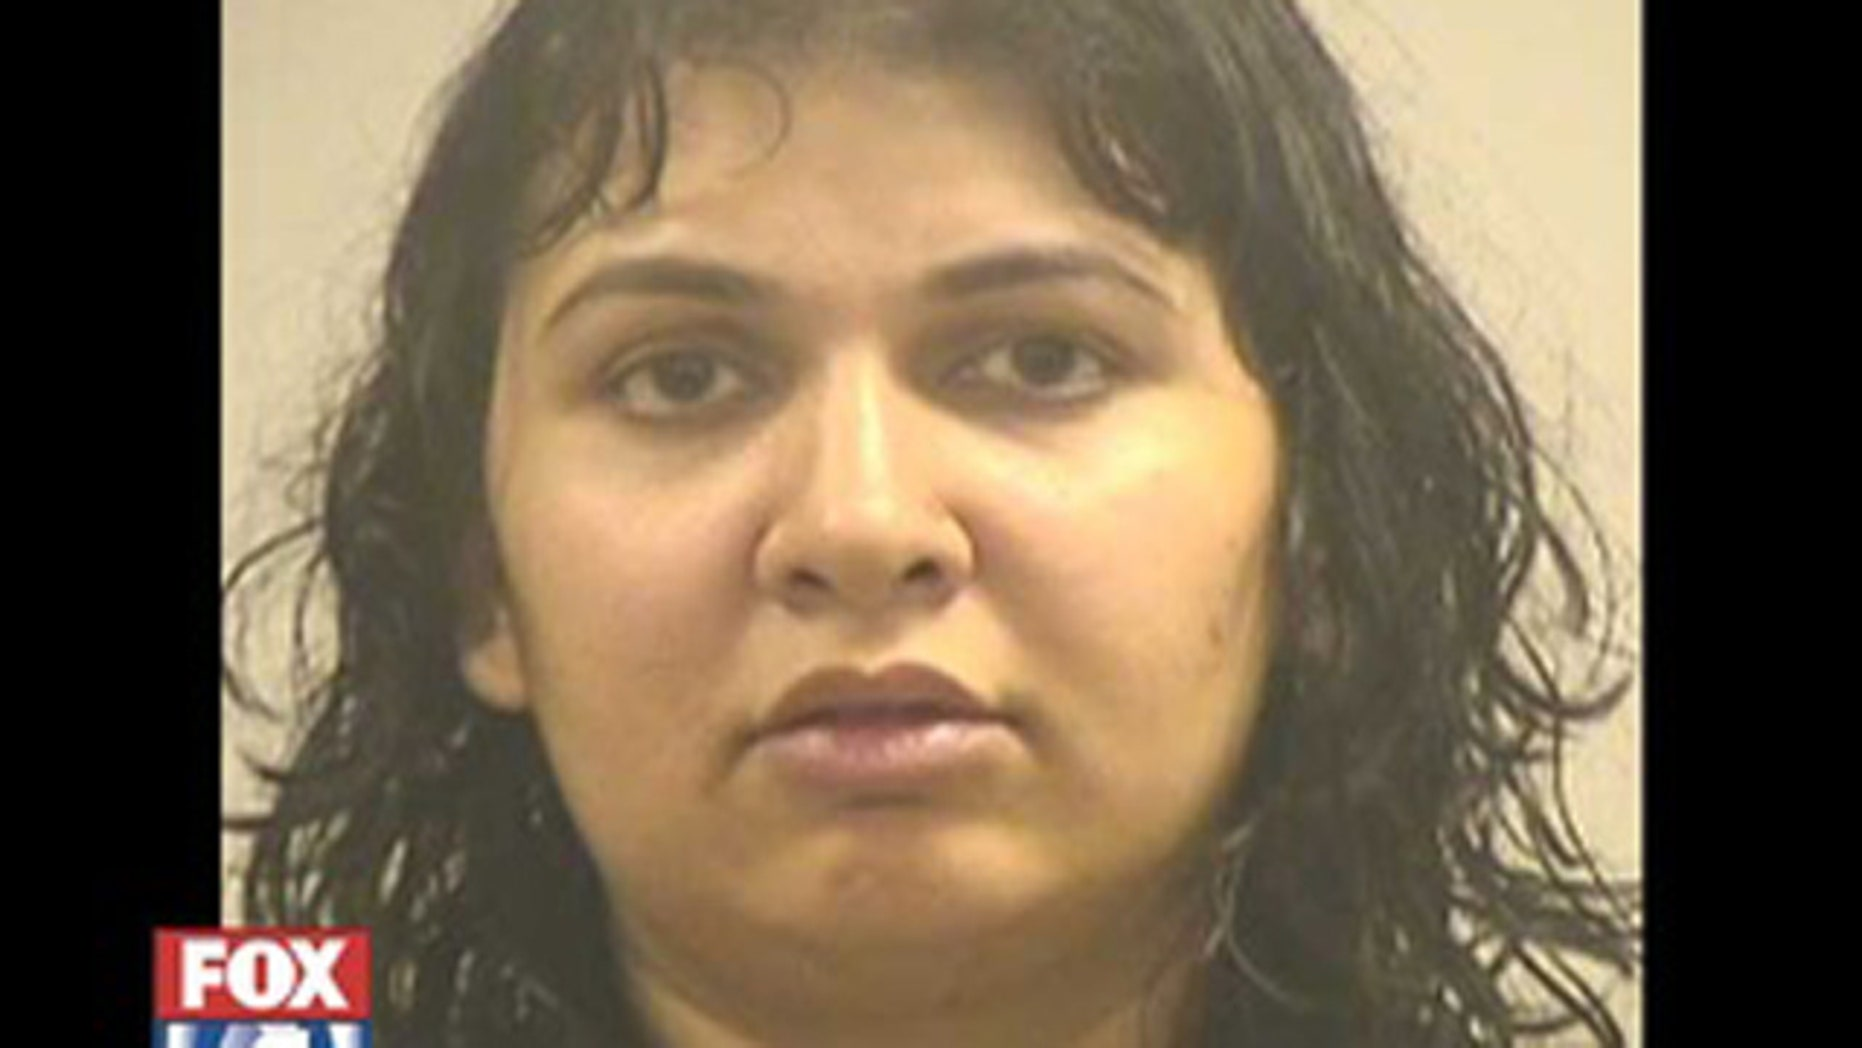 Police said 30-year-old Saiqa Akhter strangled 5-year-old Zain and 2-year-old Faraal.